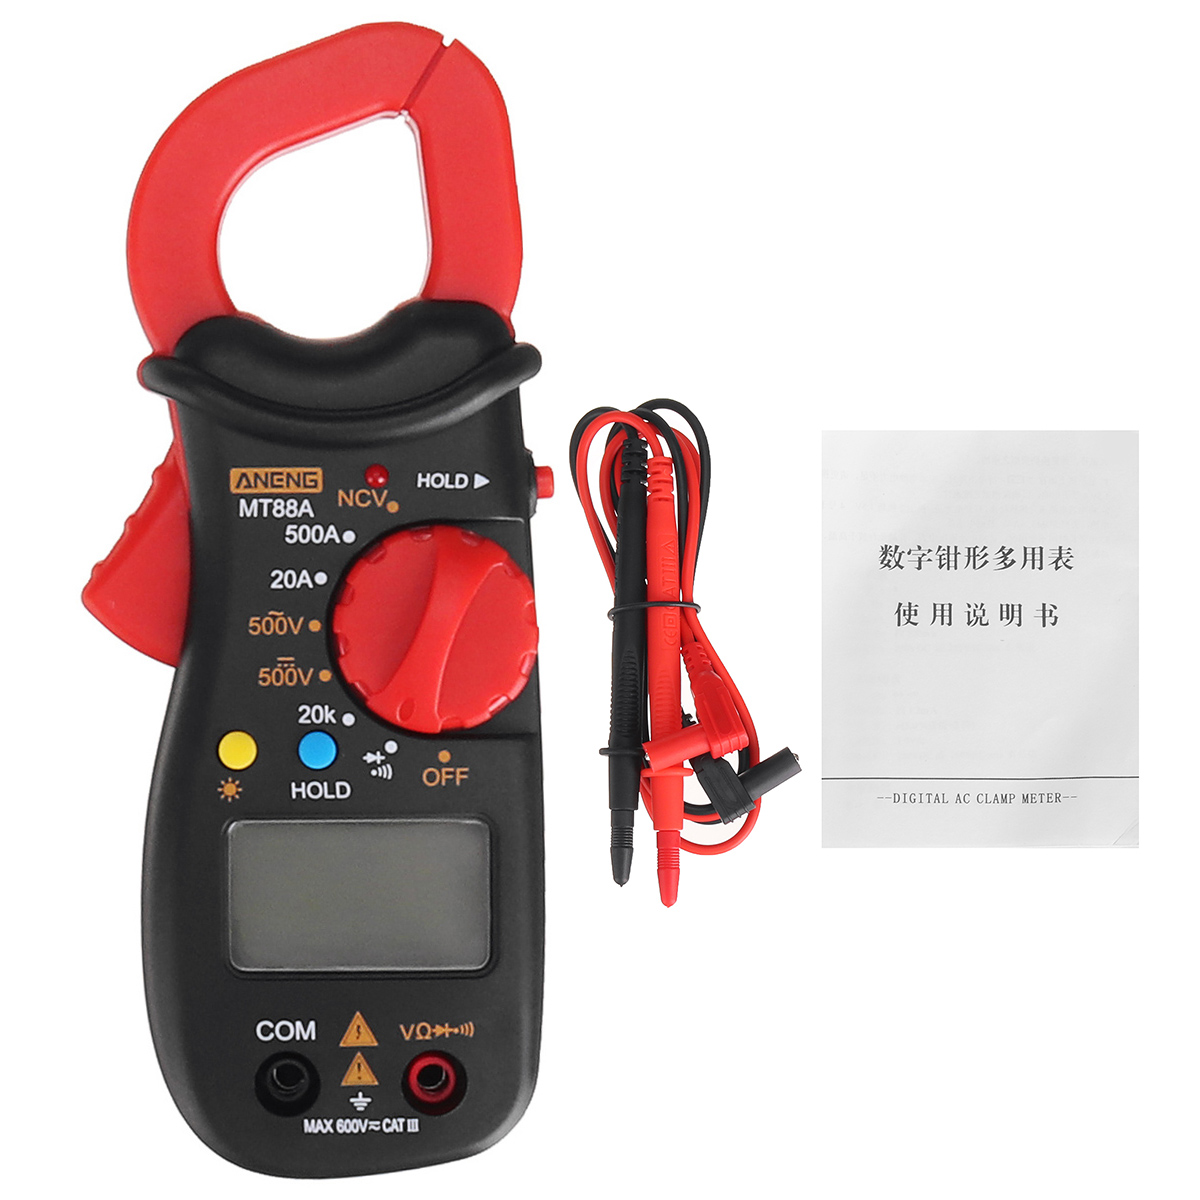 ANENG MT88A Digital Clamp Meter Multimeter DC/AC Voltage AC Current Tester Frequency Capacitance NCV Tester Measuring Tool